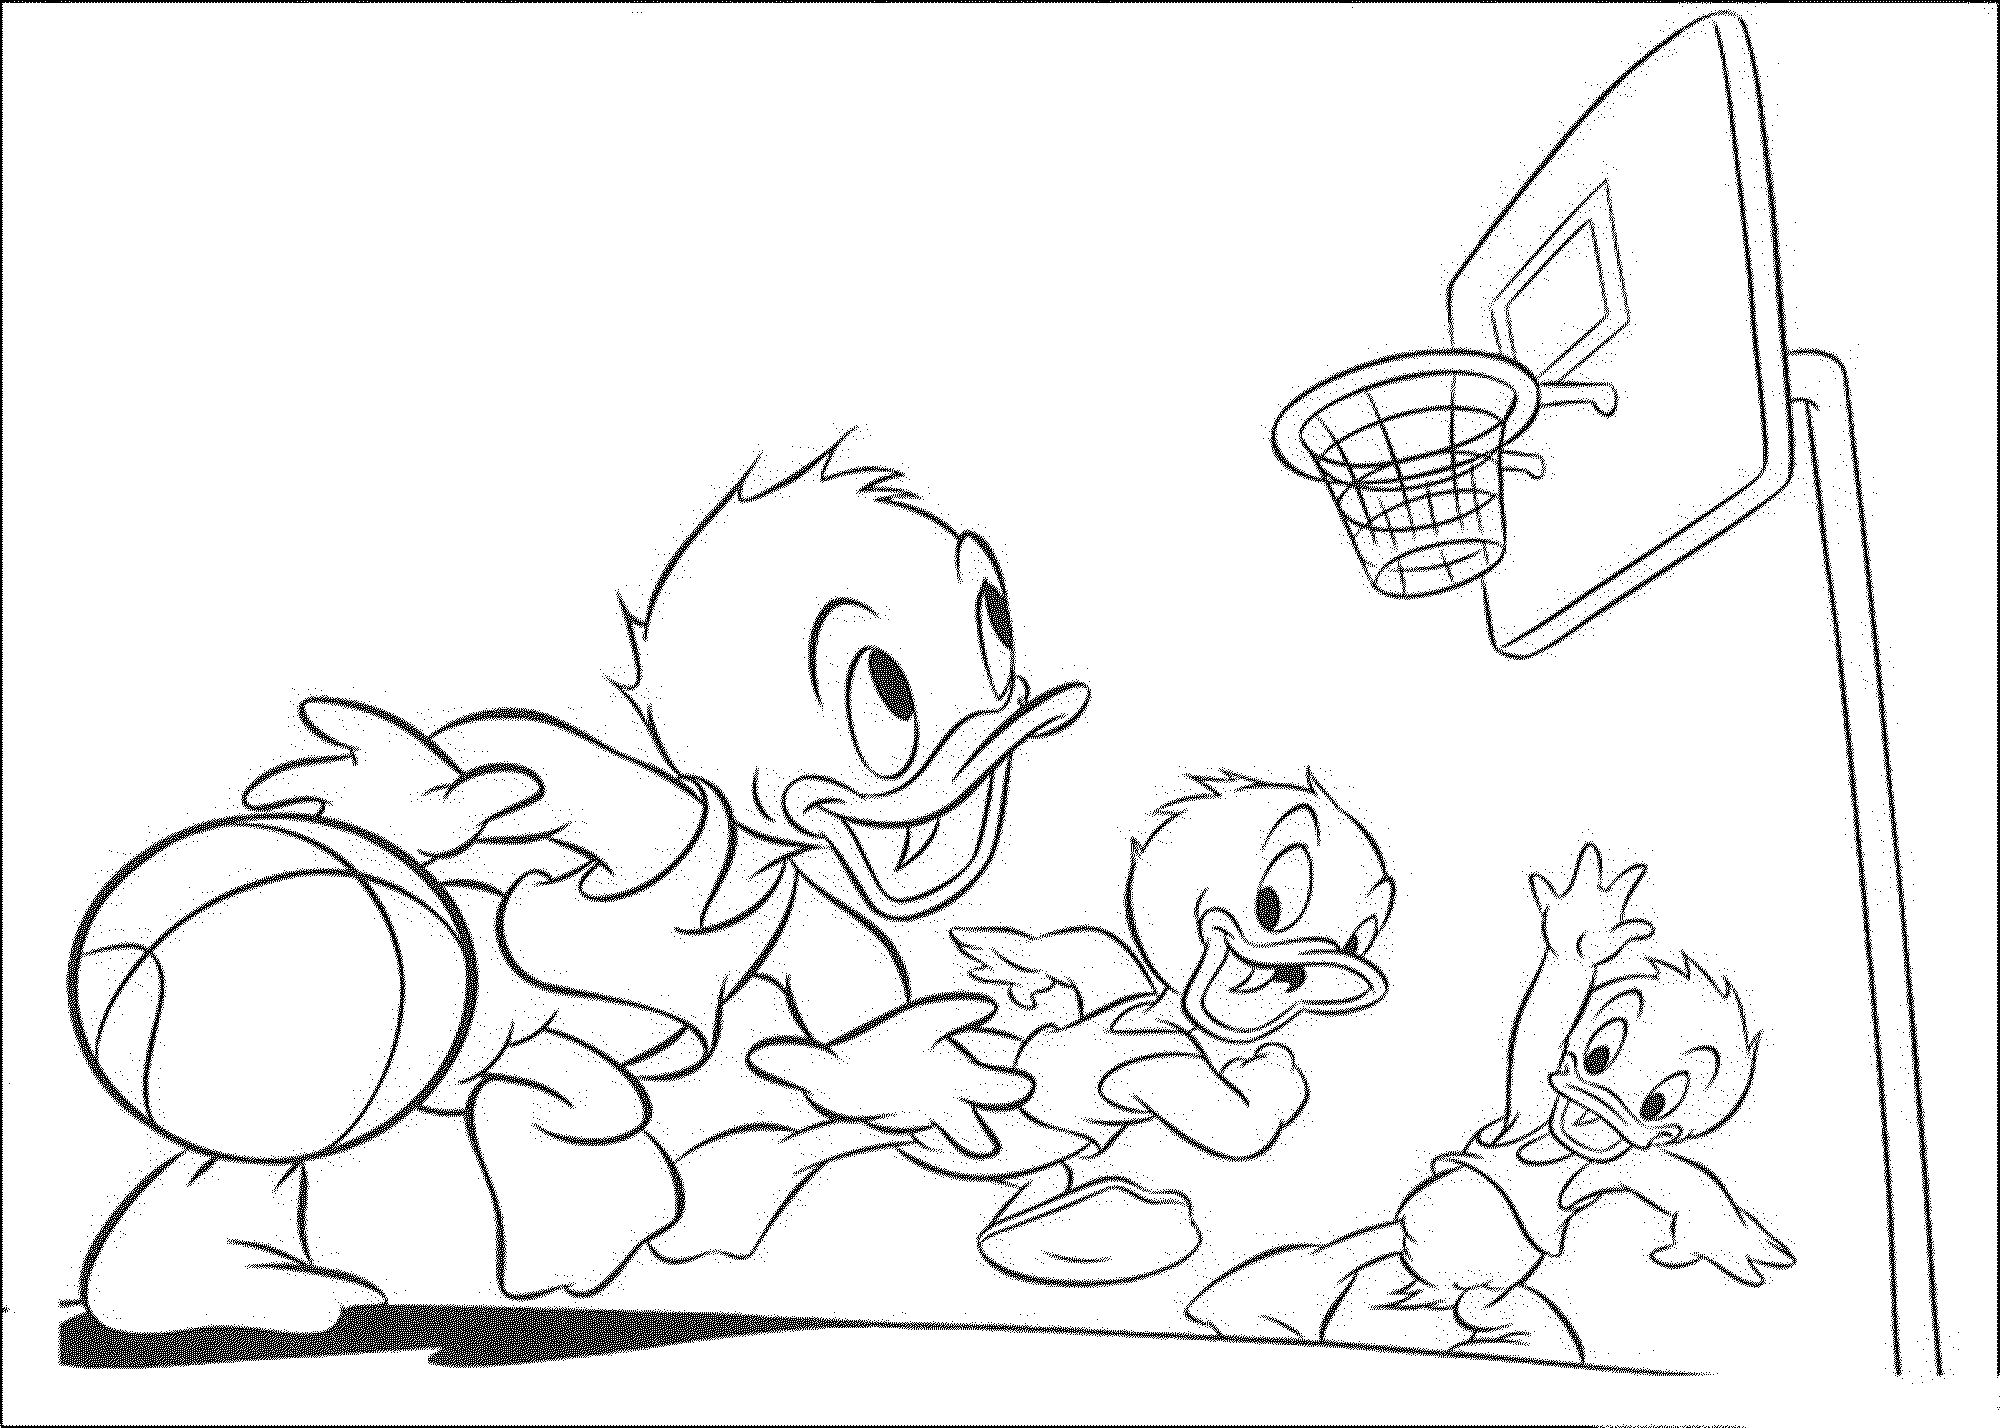 basketball-colouring-pages-printable-donald-duck